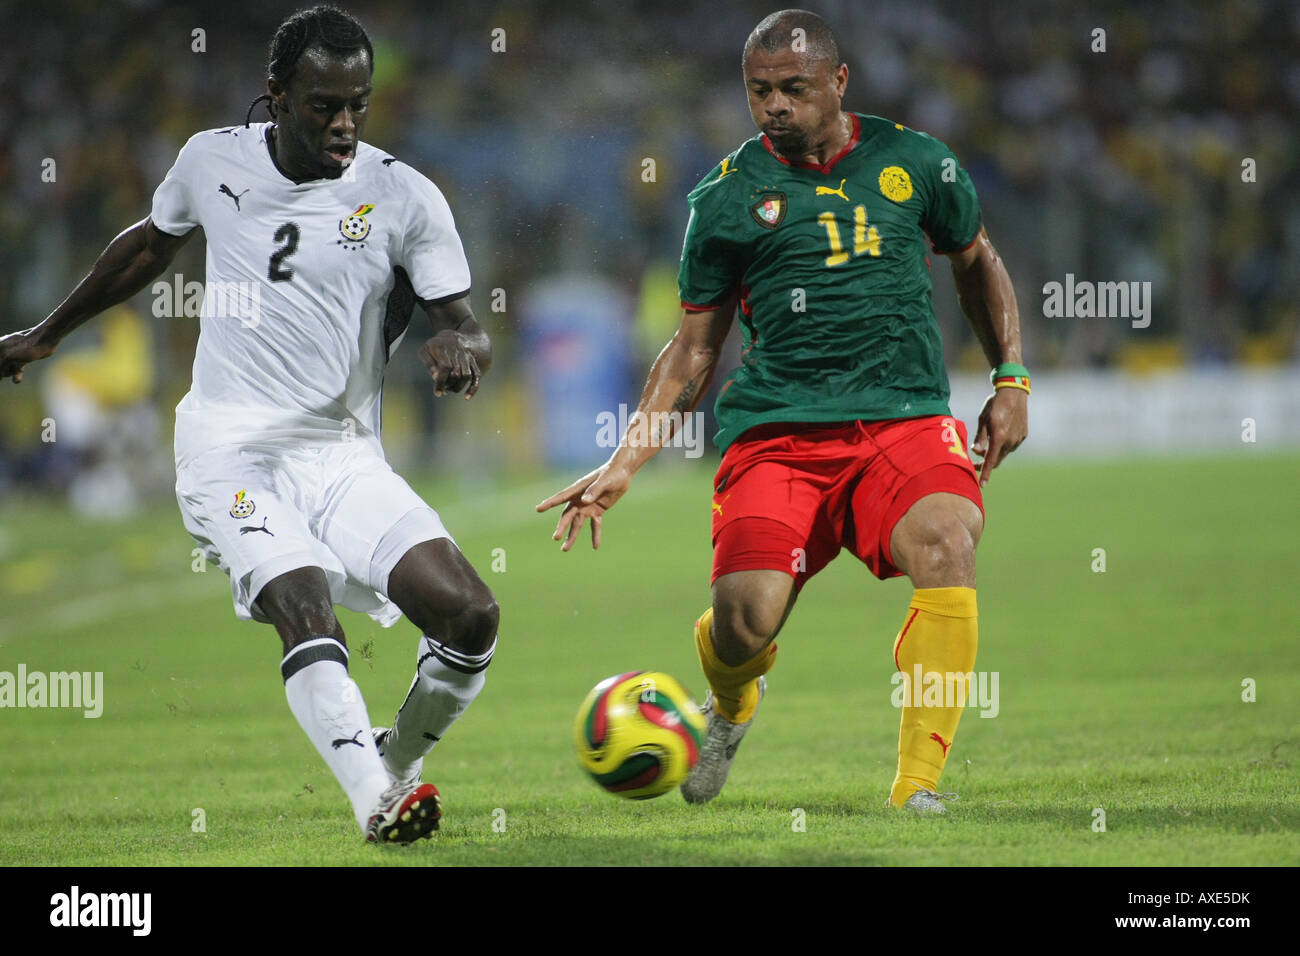 Ghana vs. Cameroon, Africa Cup of Nations 2008 - Stock Image